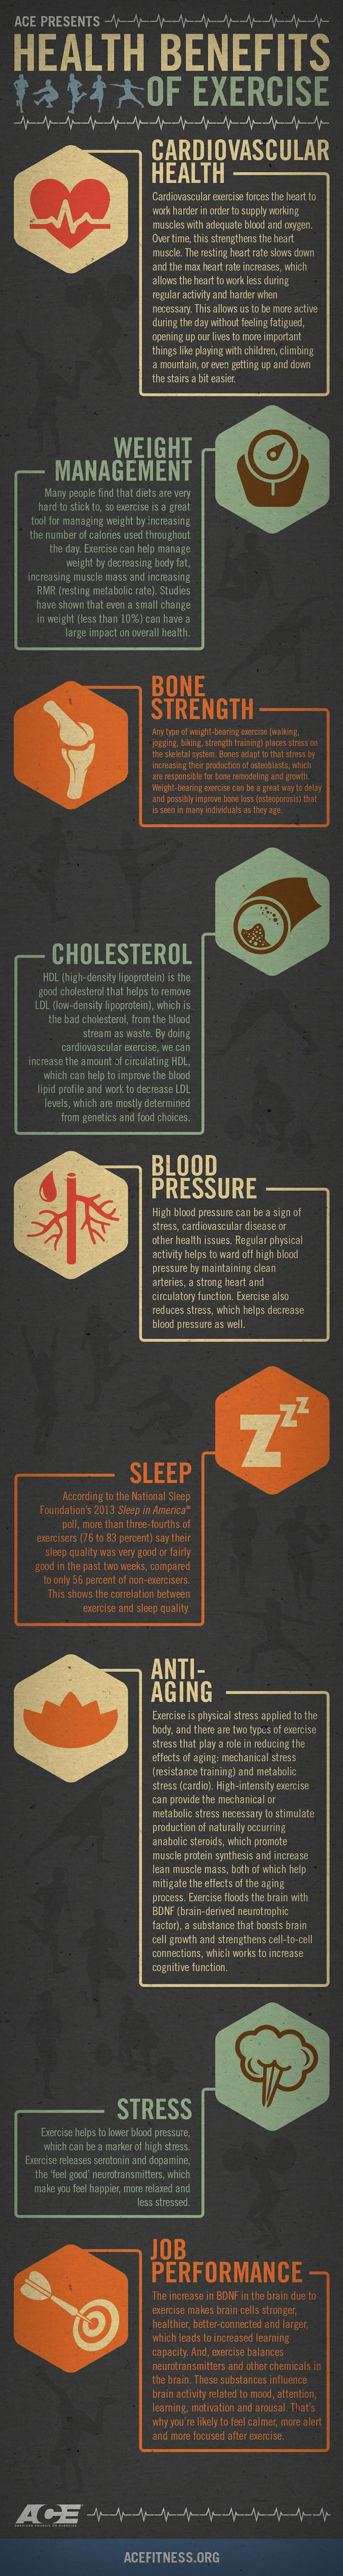 Health Benefits of Exercise Infographic